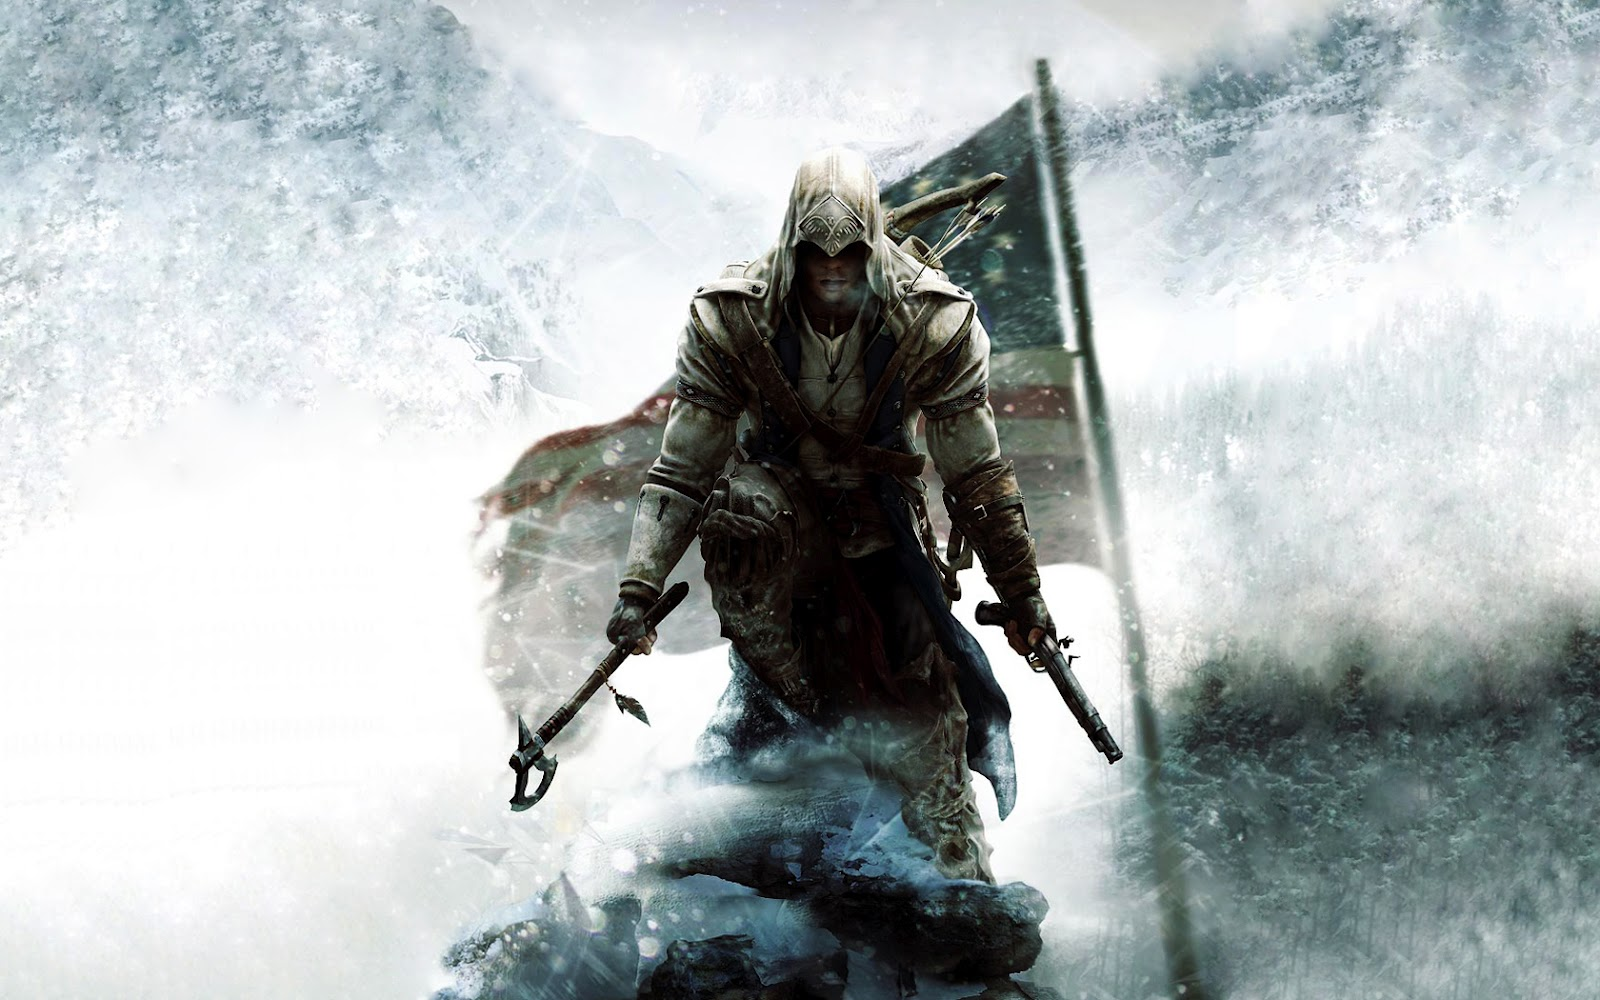 Assassin's Creed III New Game HD Wallpapers| HD Wallpapers ...